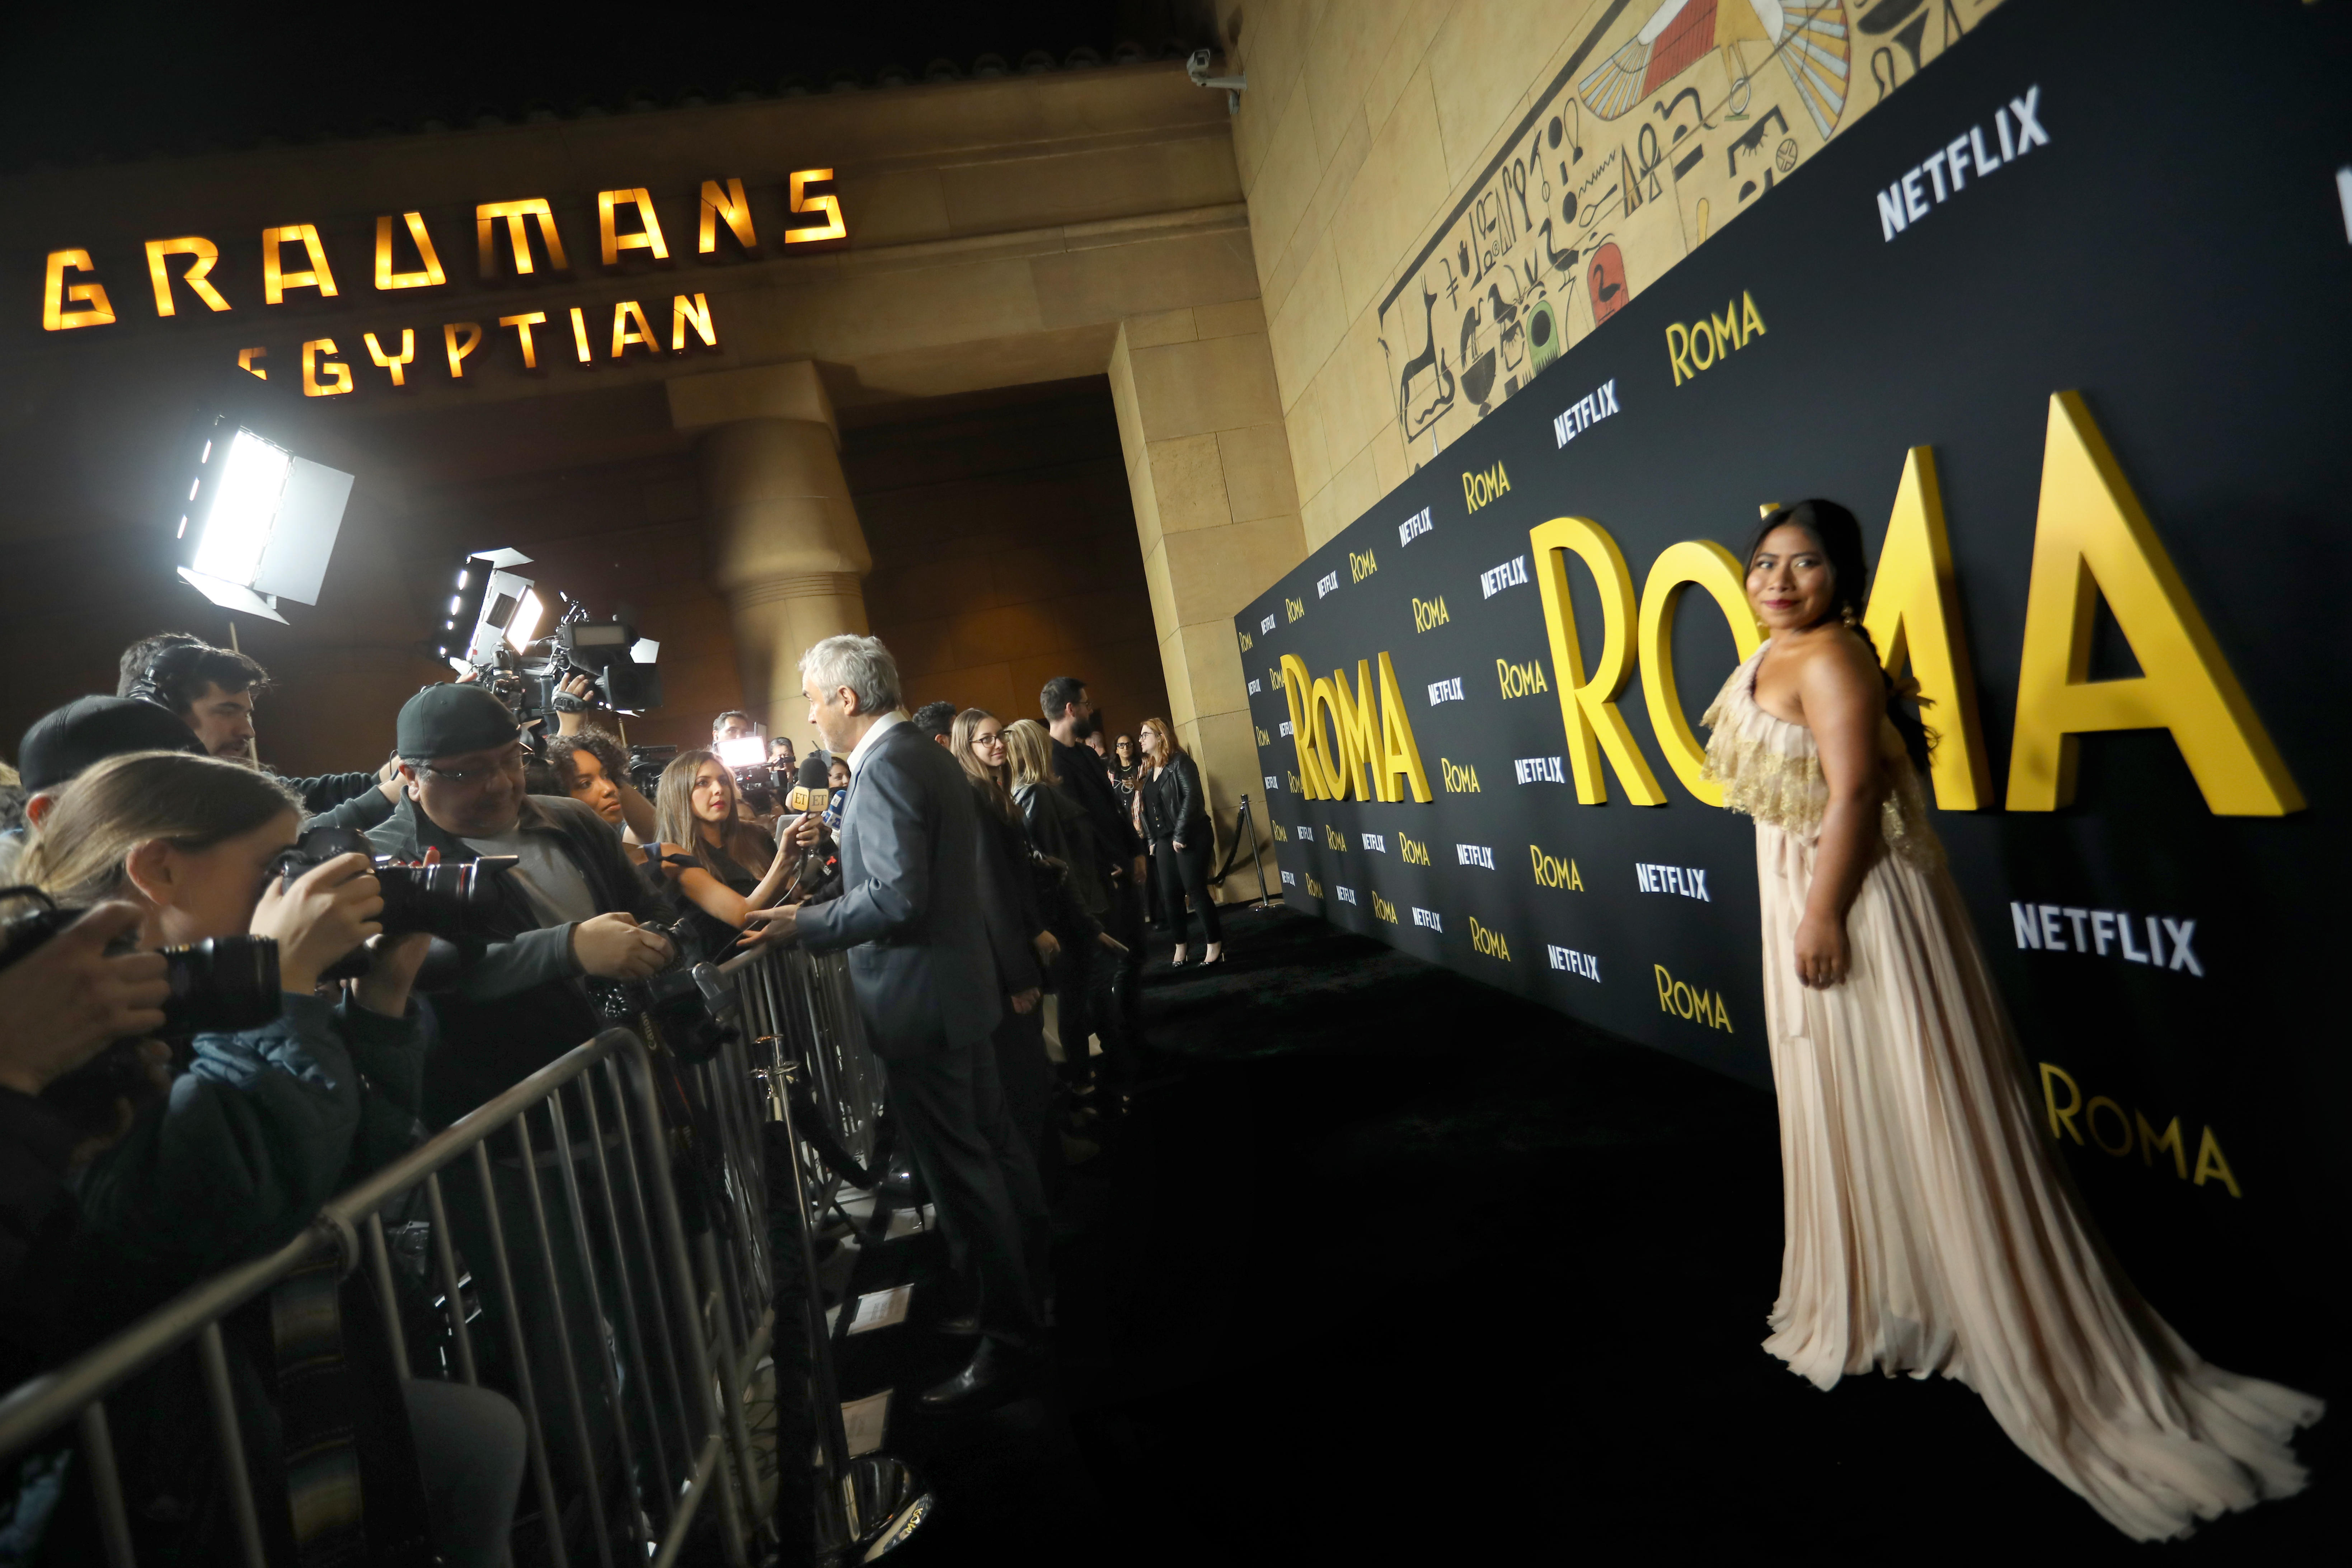 Actress Yalitza Aparicio poses for flashing cameras on the red carpet in courtyard of the Egyptian theater